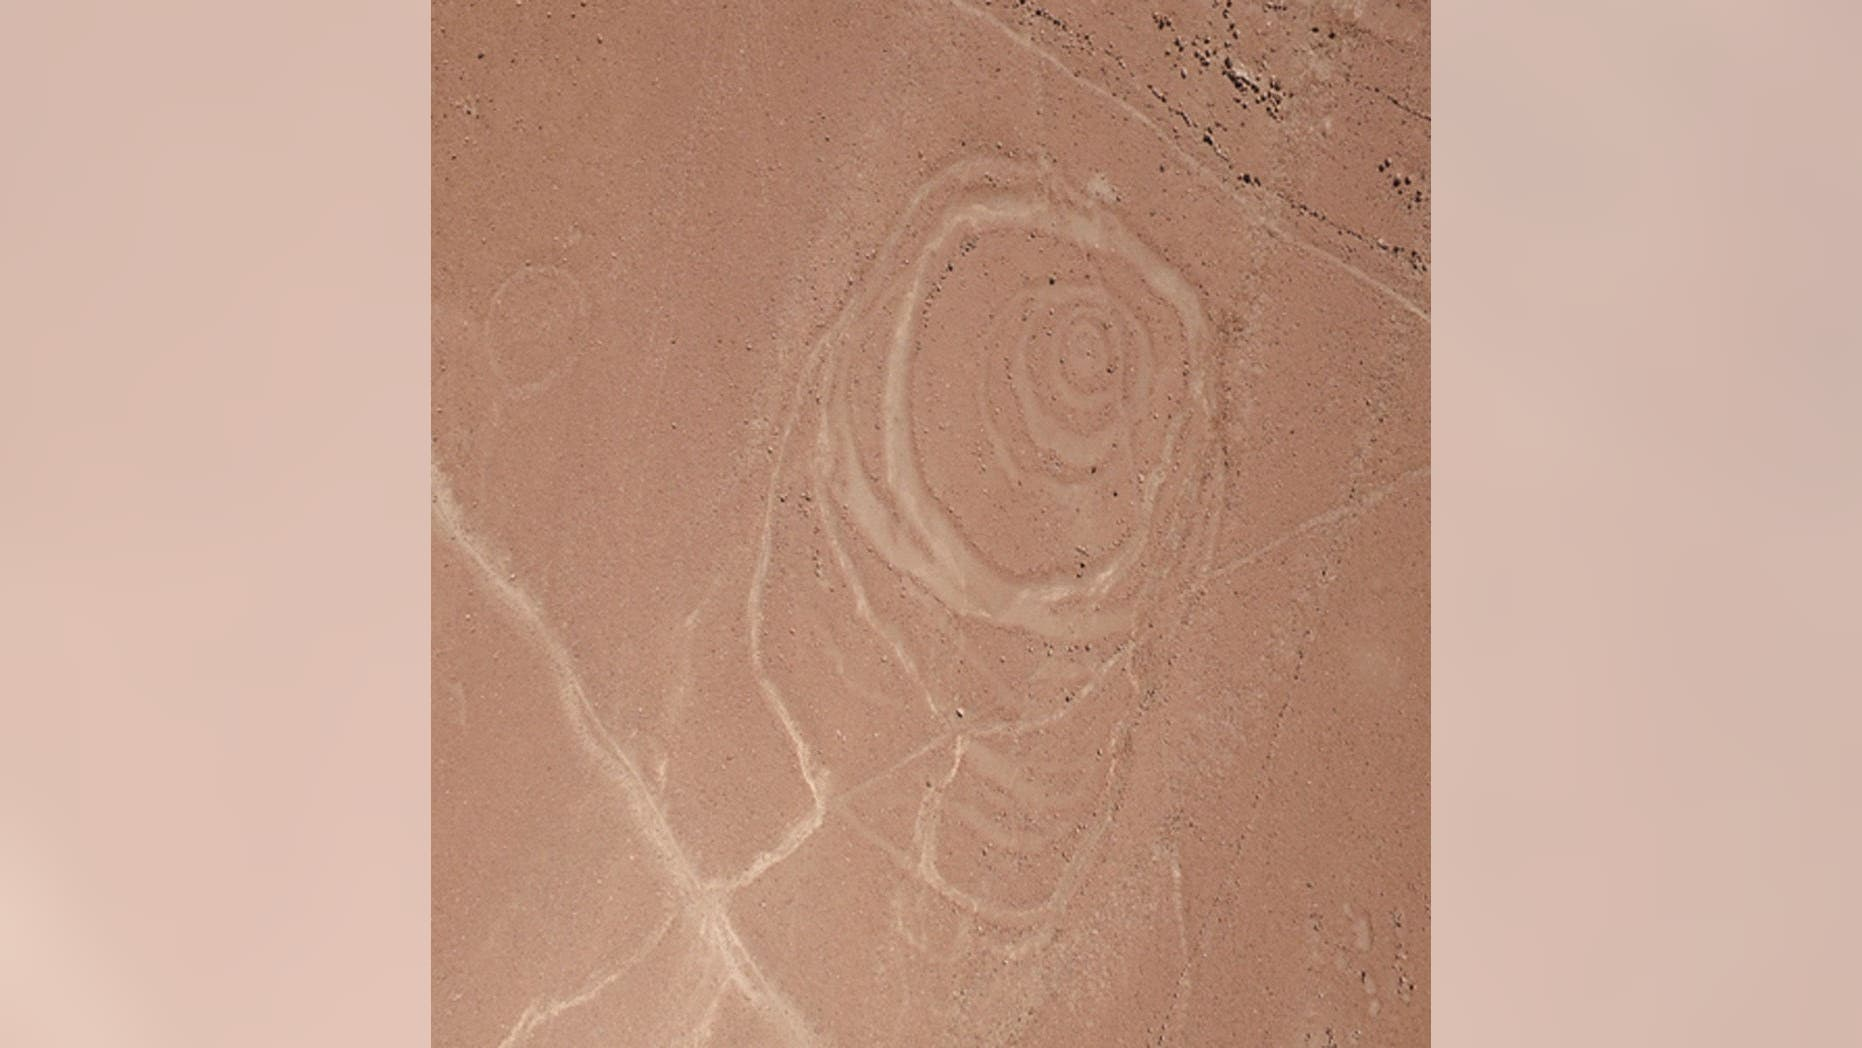 One of the complex circular geoglyphs the team mapped at Quilcapampa, in the Sihuas Valley in Peru, has at least six rings arranged in an irregular pattern. (Credit: Photo courtesy Justin Jennings)